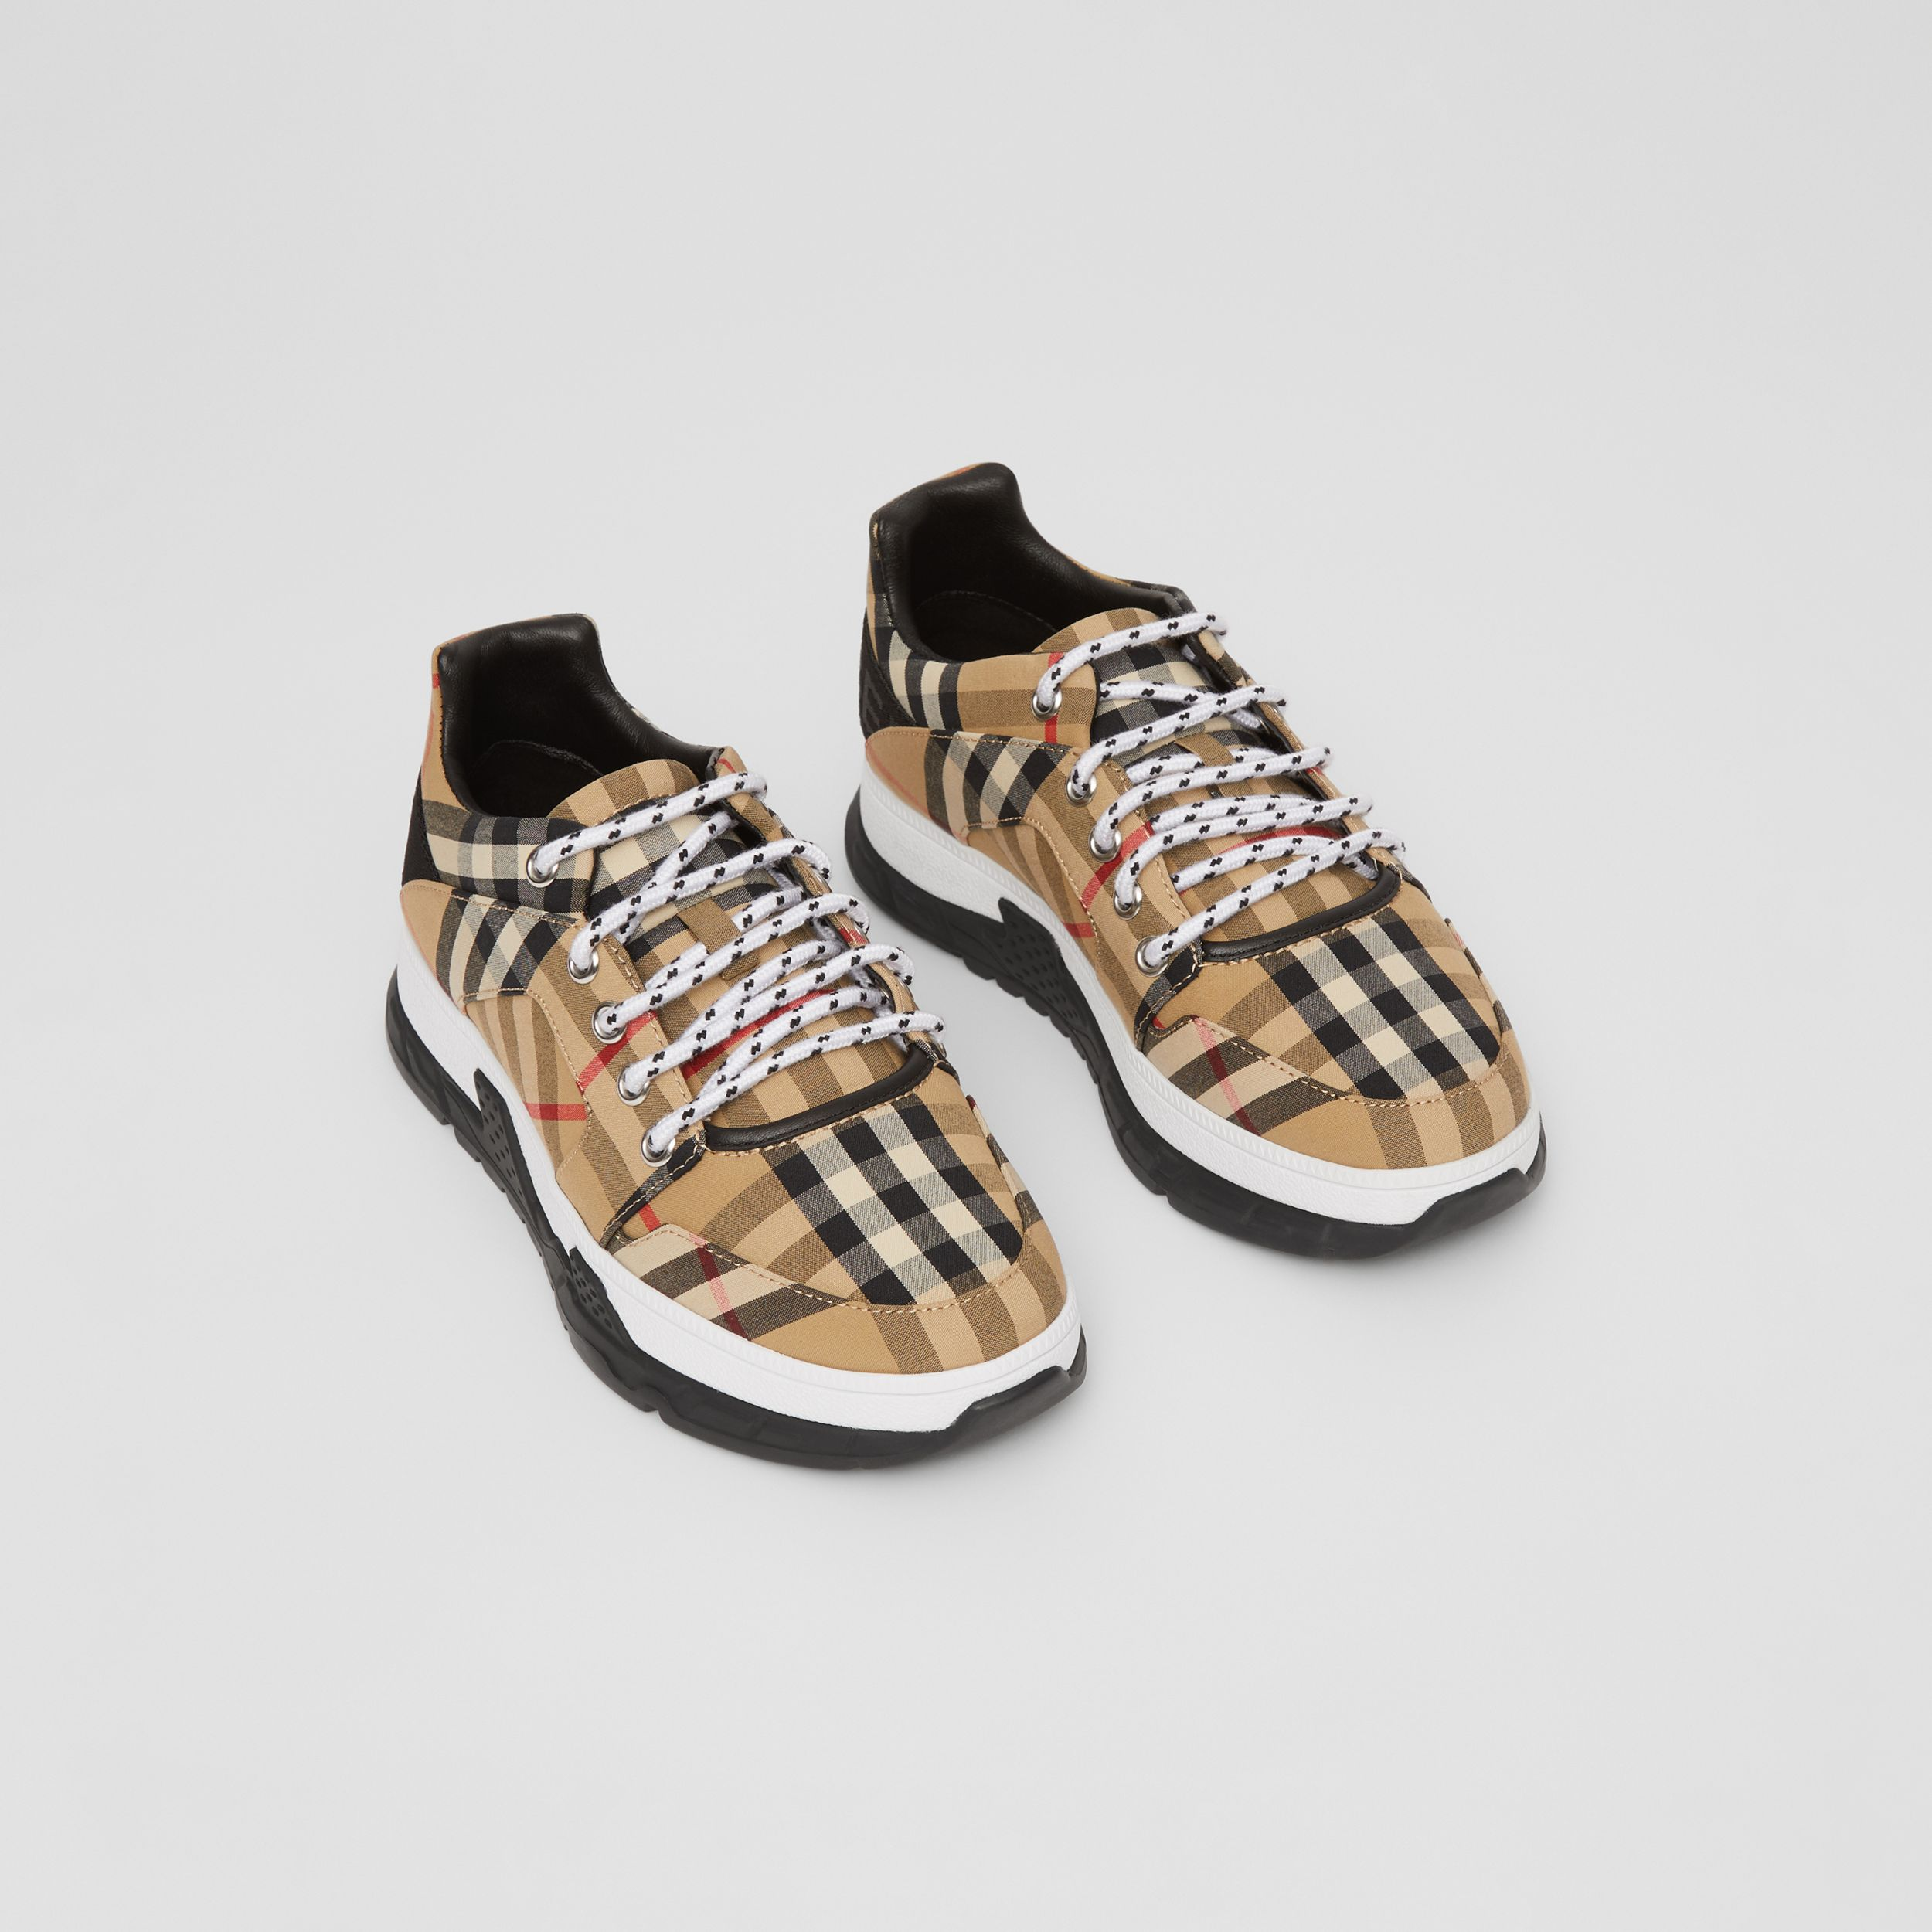 Logo Detail Vintage Check Cotton Sneakers in Archive Beige - Children | Burberry Hong Kong S.A.R. - 1